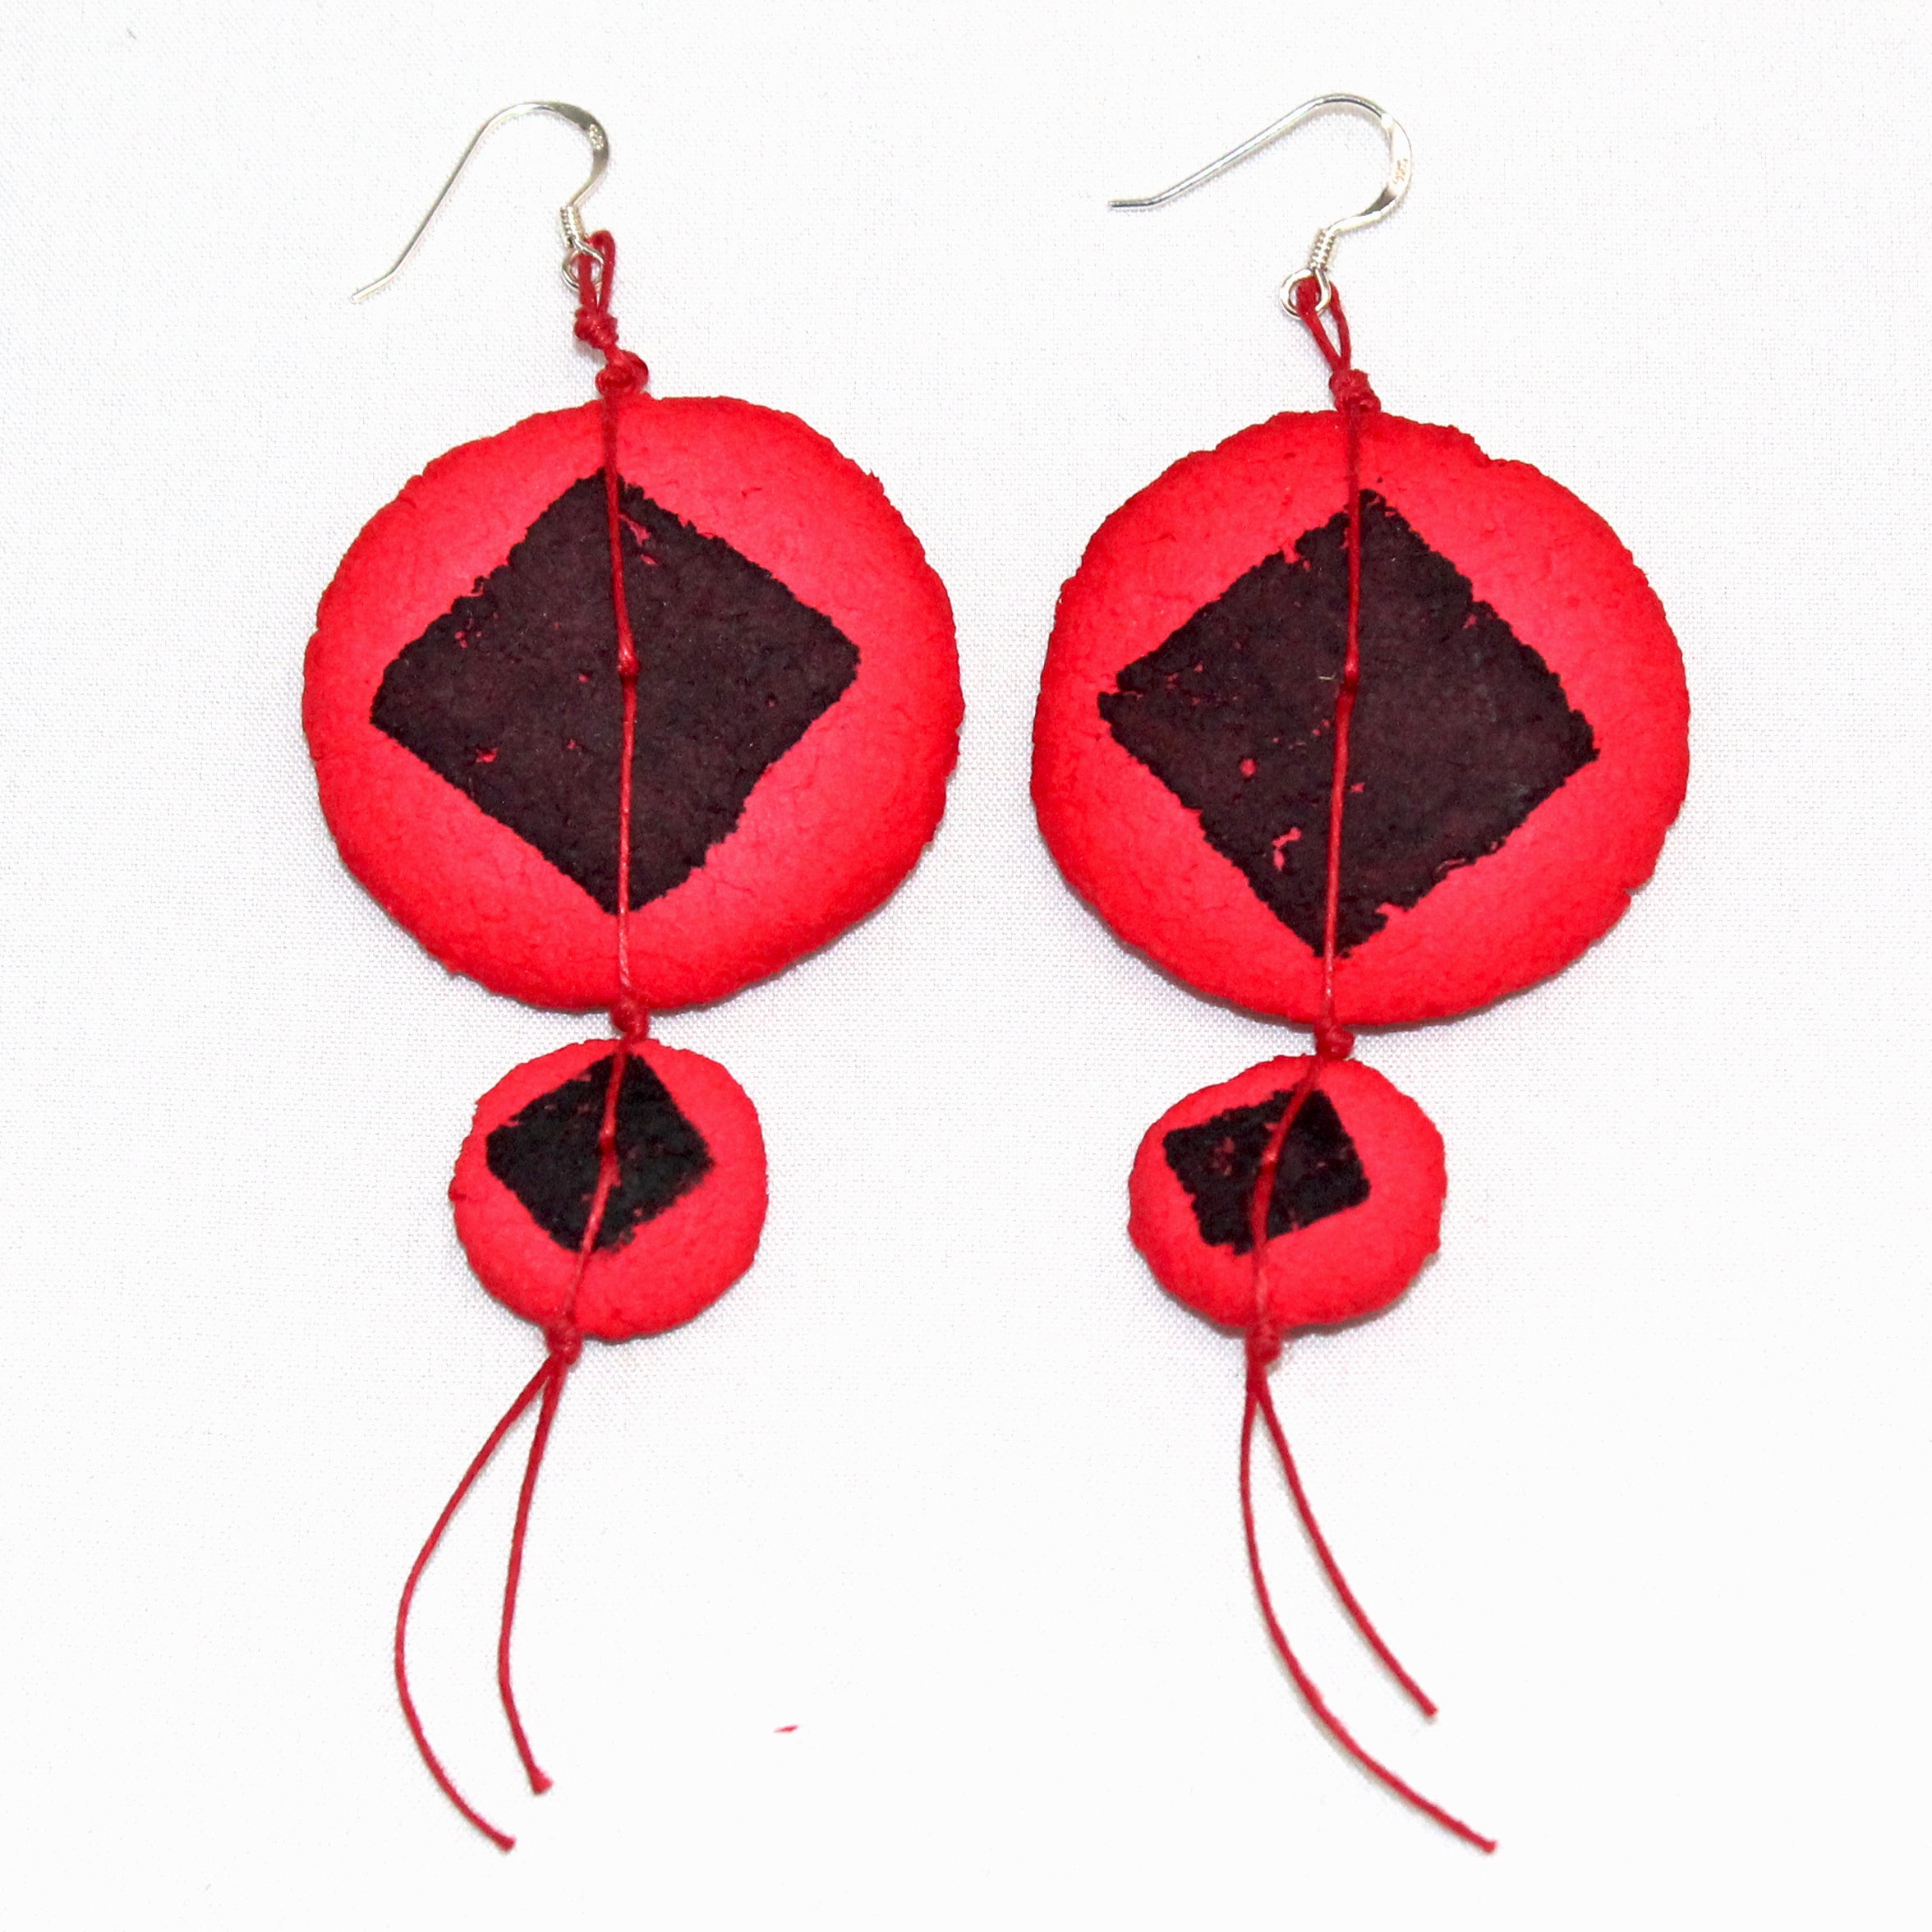 Begona Rentero Earrings, Nu Assoupie, Scarlet